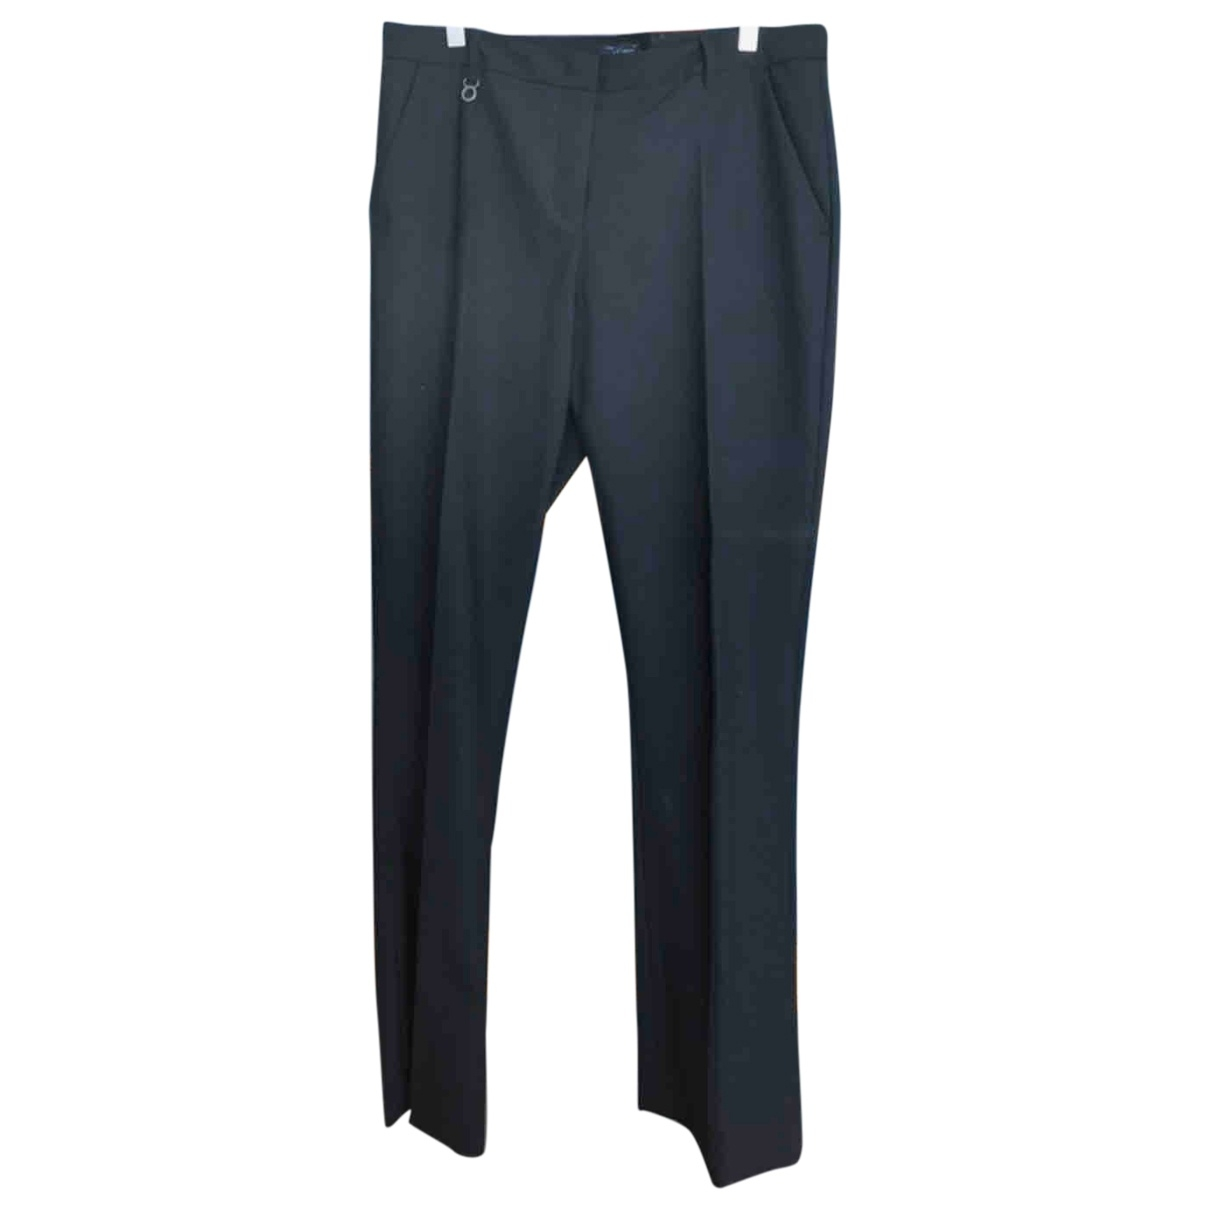 Armani Jeans \N Black Trousers for Women 48 IT